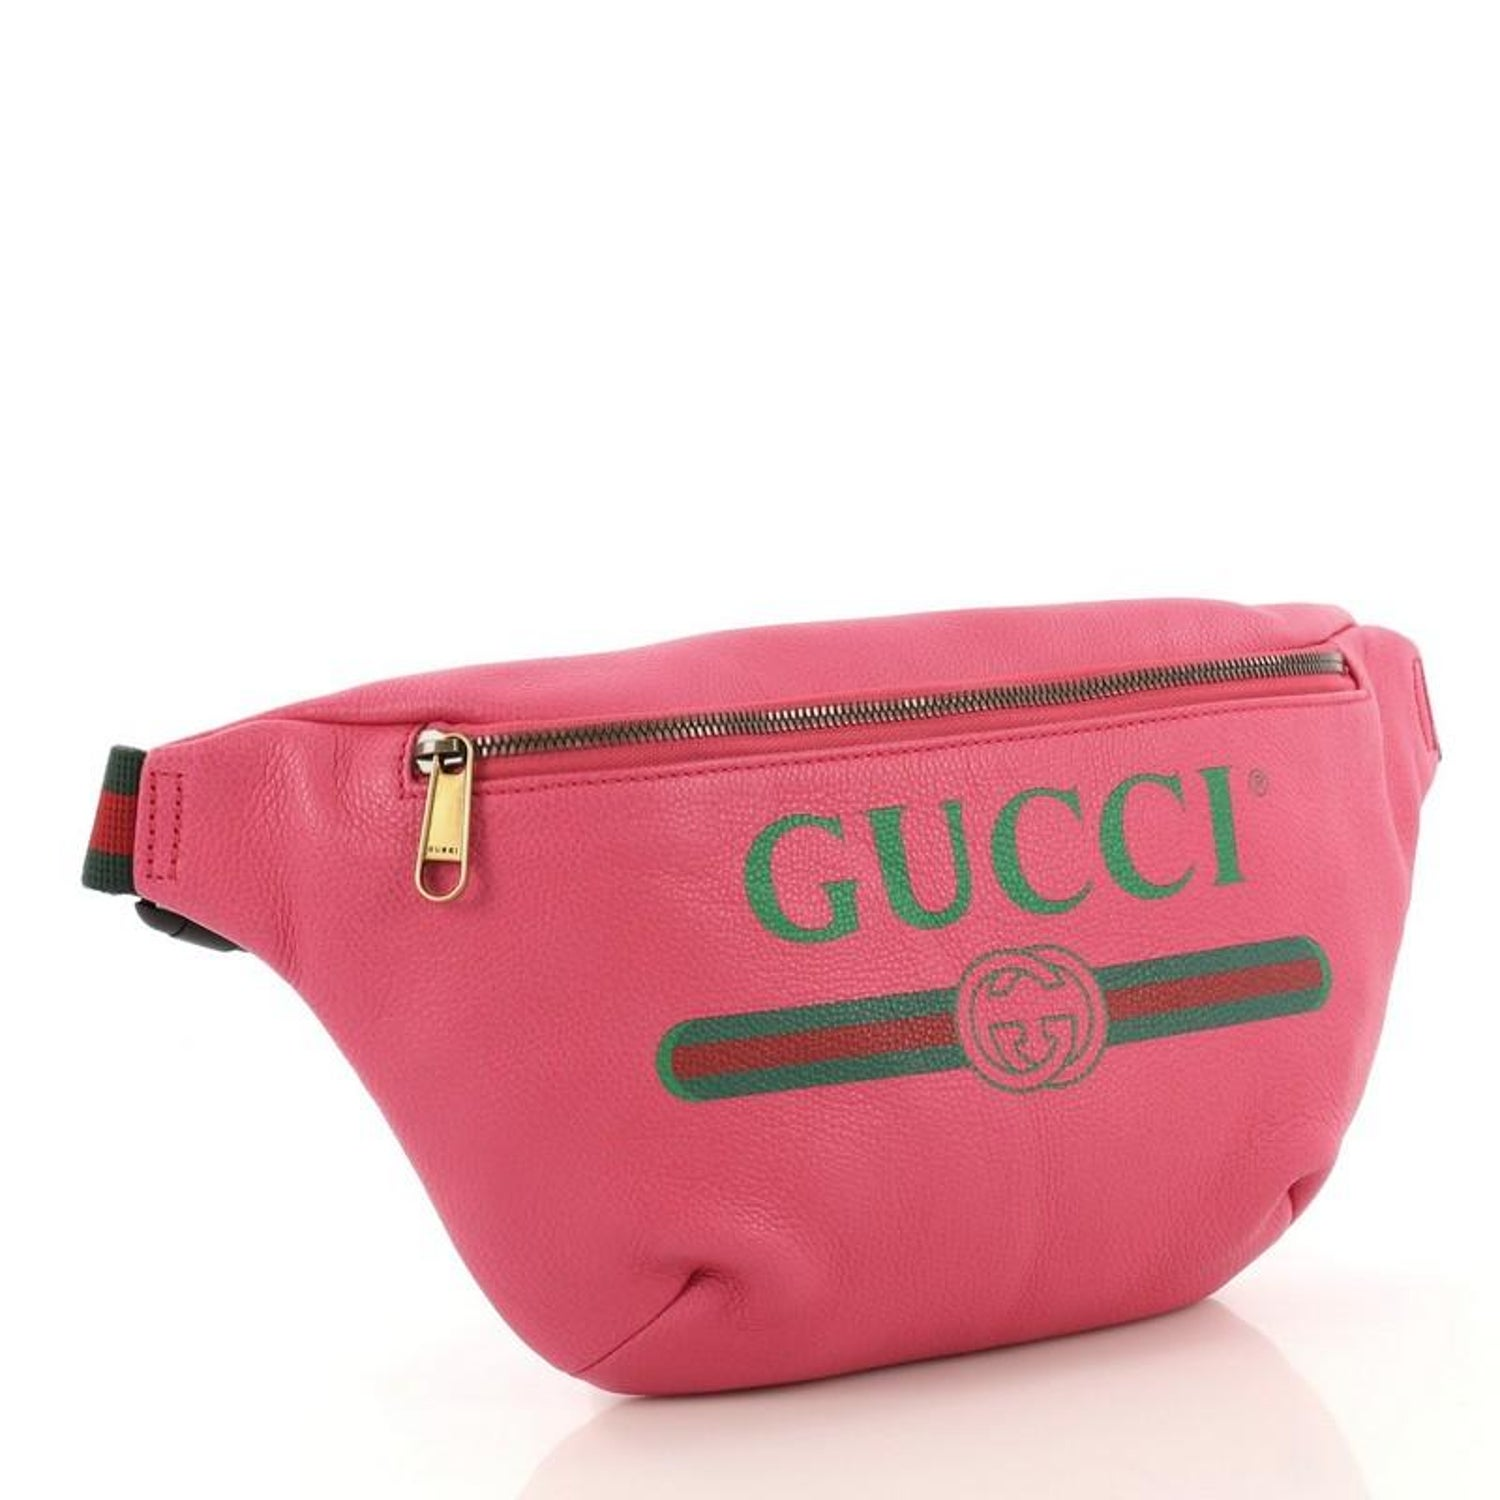 6535db1a8ca2c4 Gucci Logo Belt Bag Printed Leather Medium For Sale at 1stdibs